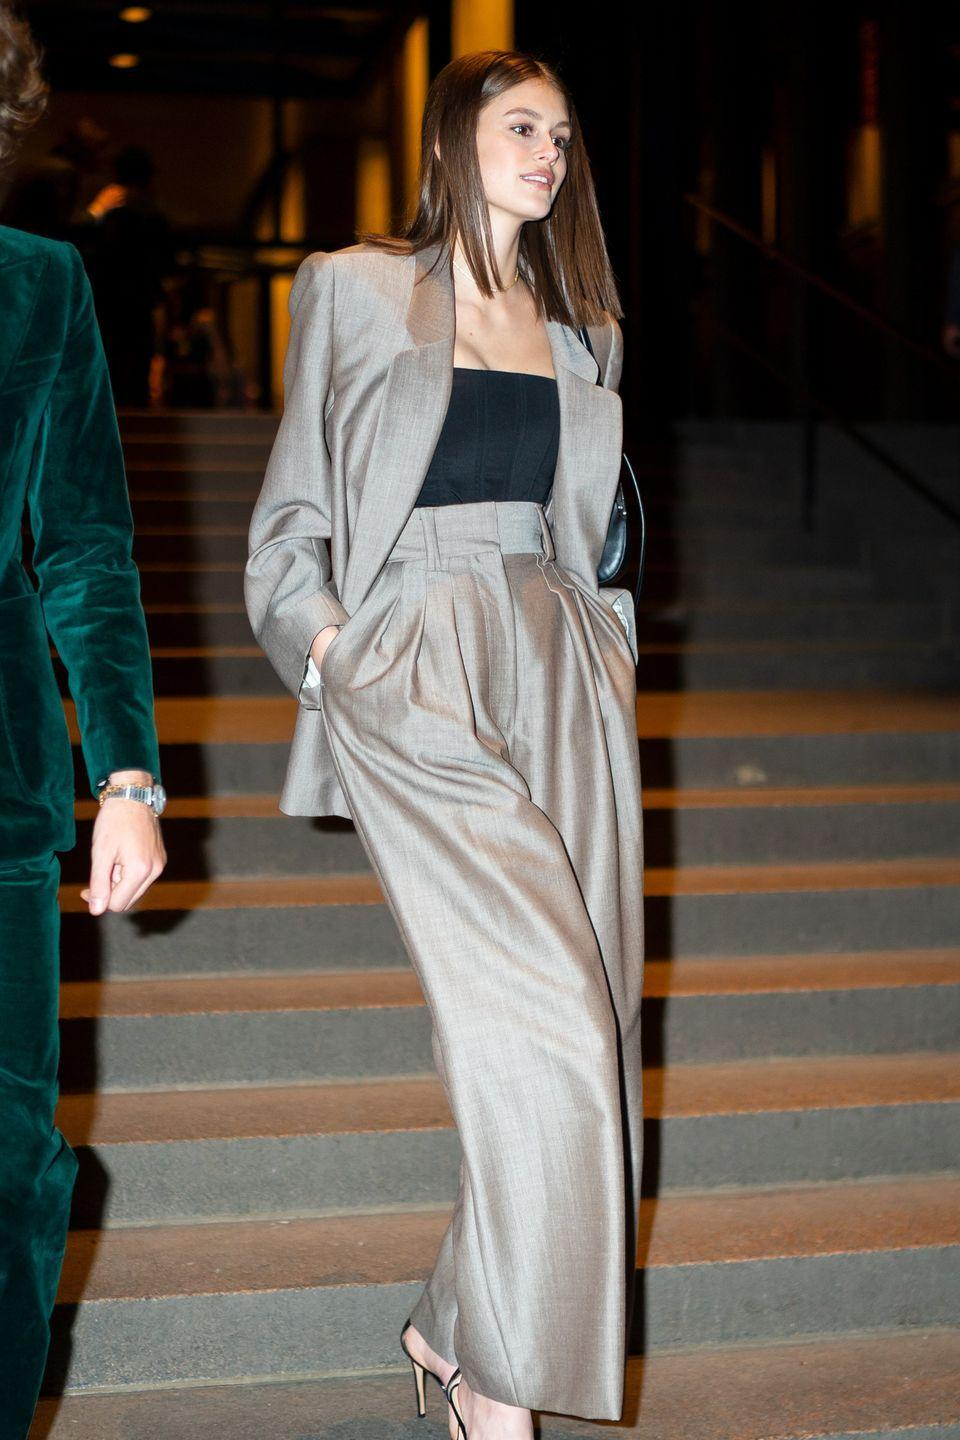 <p>Forget the floral maxi, an '80s power suit is a showstopping alternative wedding guest outfit, ideal for an evening reception in the city and worn masterfully by Kaia Gerber, of course, as she attended Marc Jacobs' big day.</p>